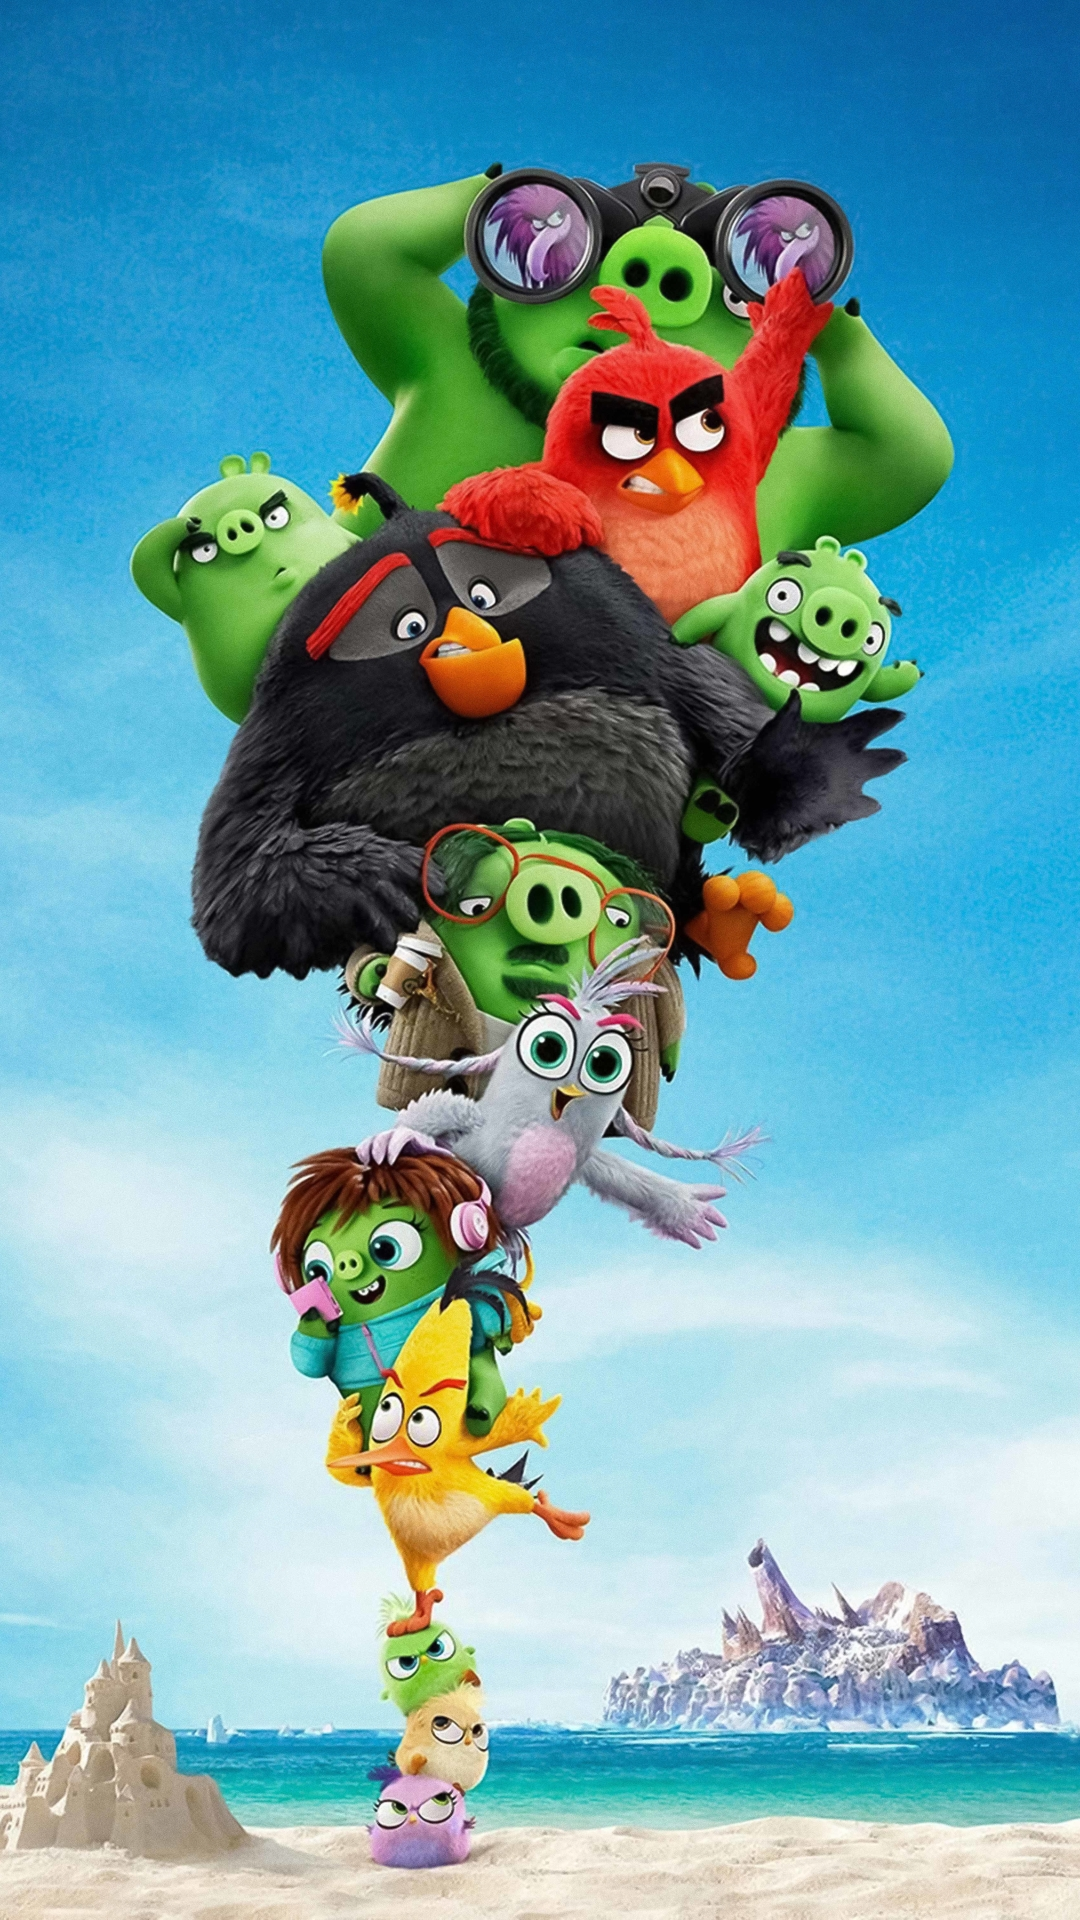 1080x1920 The Angry Birds 2 Iphone 7, 6s, 6 Plus and Pixel ...